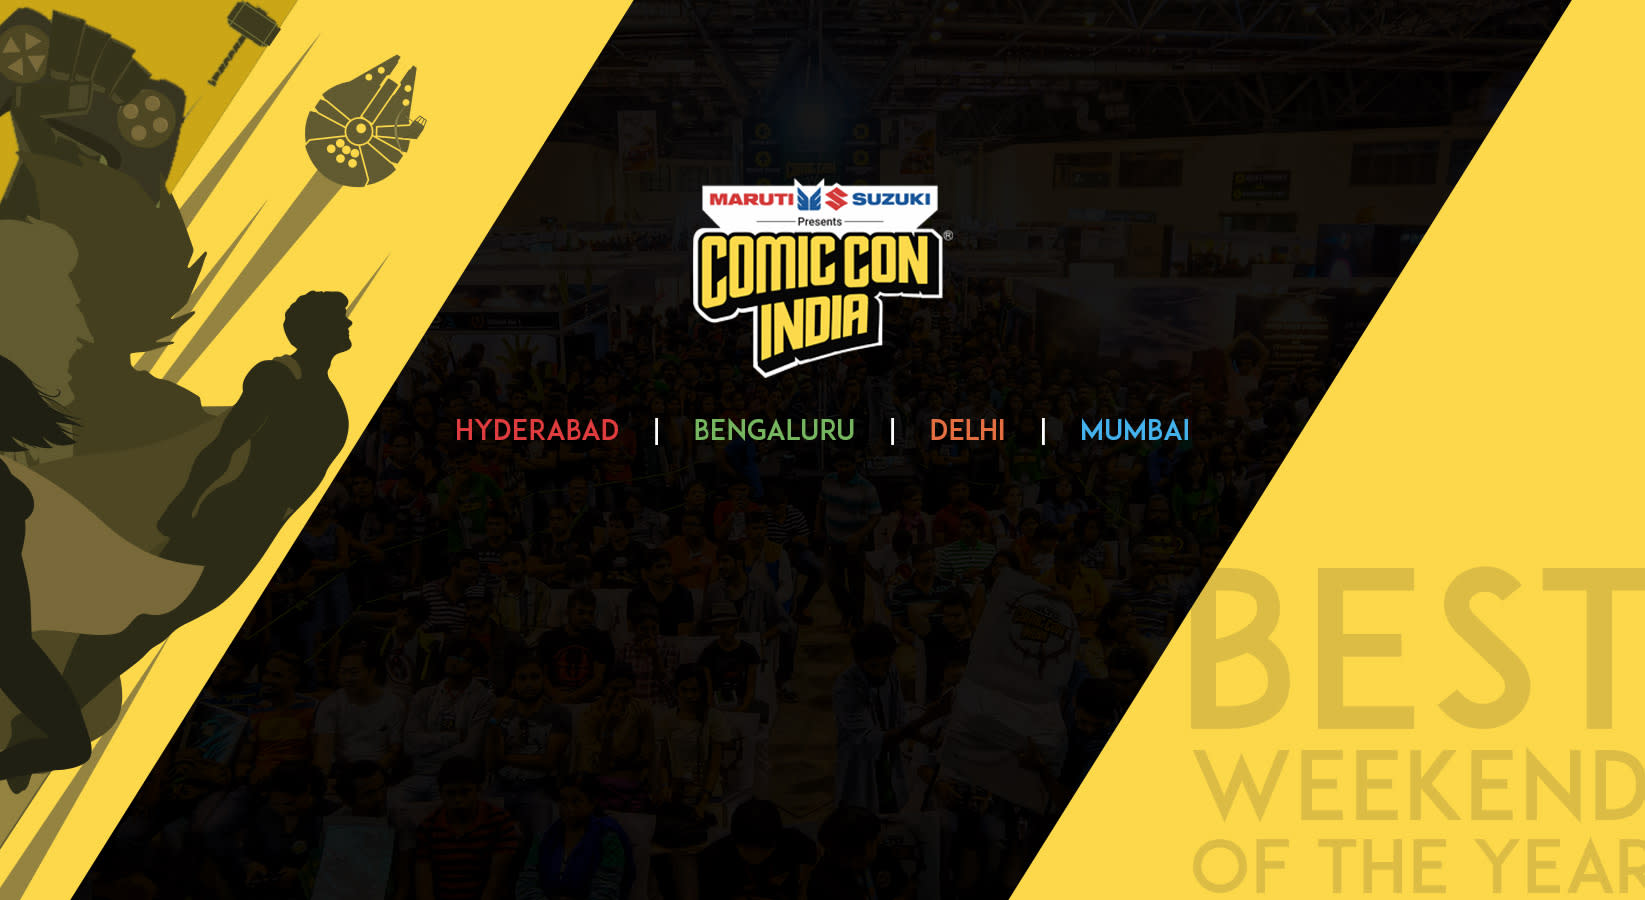 Comic Con India 2018: Hyderabad, Delhi, Bengaluru, Mumbai!